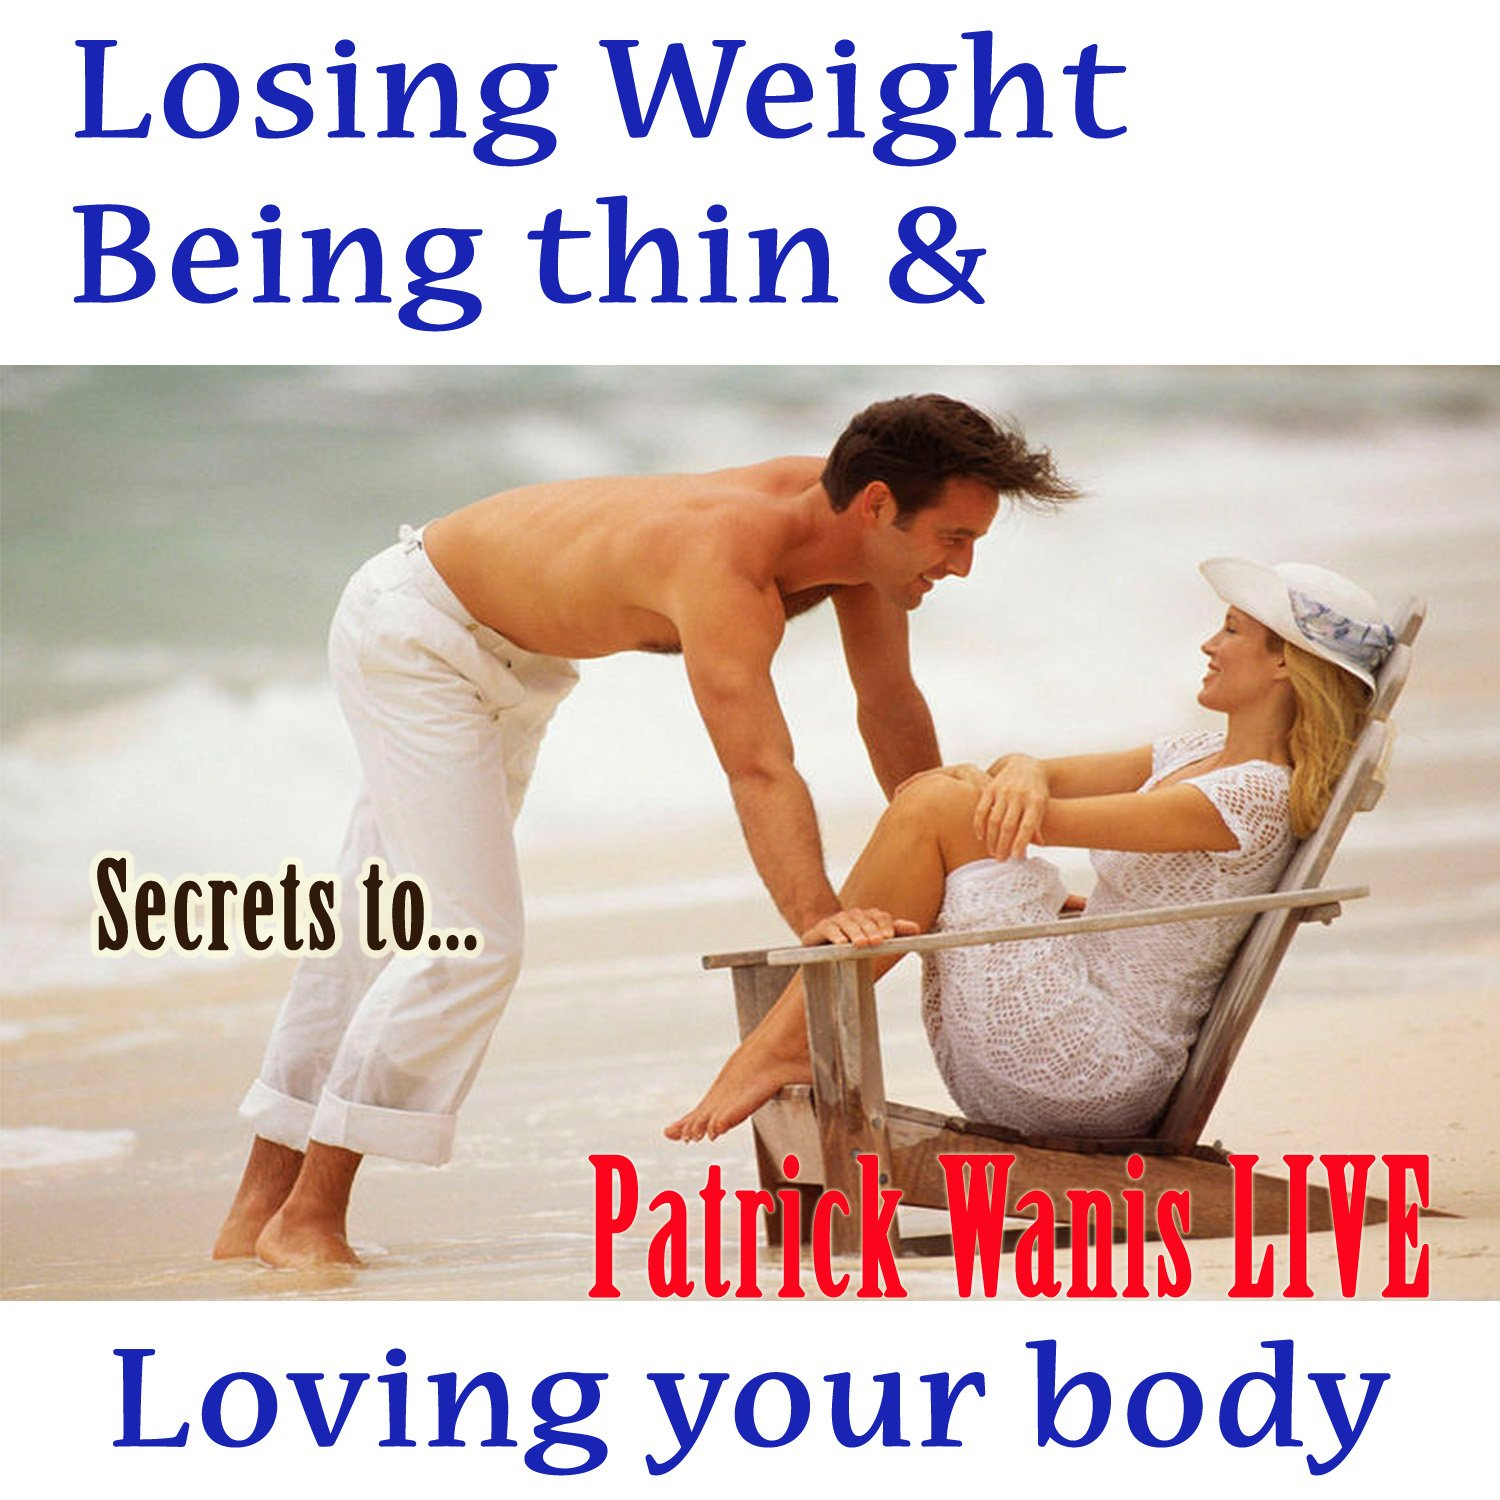 Secrets To Losing Weight, Being Thin & Loving Your Body + Bonuses – Instant Download